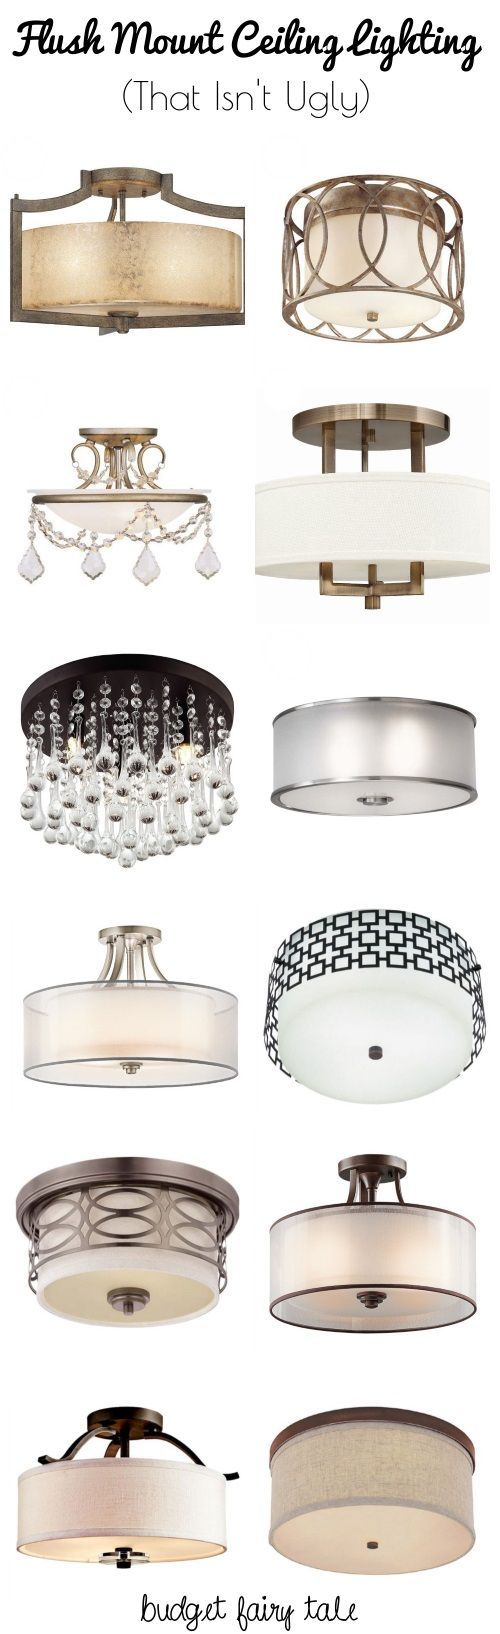 Decorating Our Castle Seeking Flush Mount Lighting Options That - Kitchen ceiling lighting options